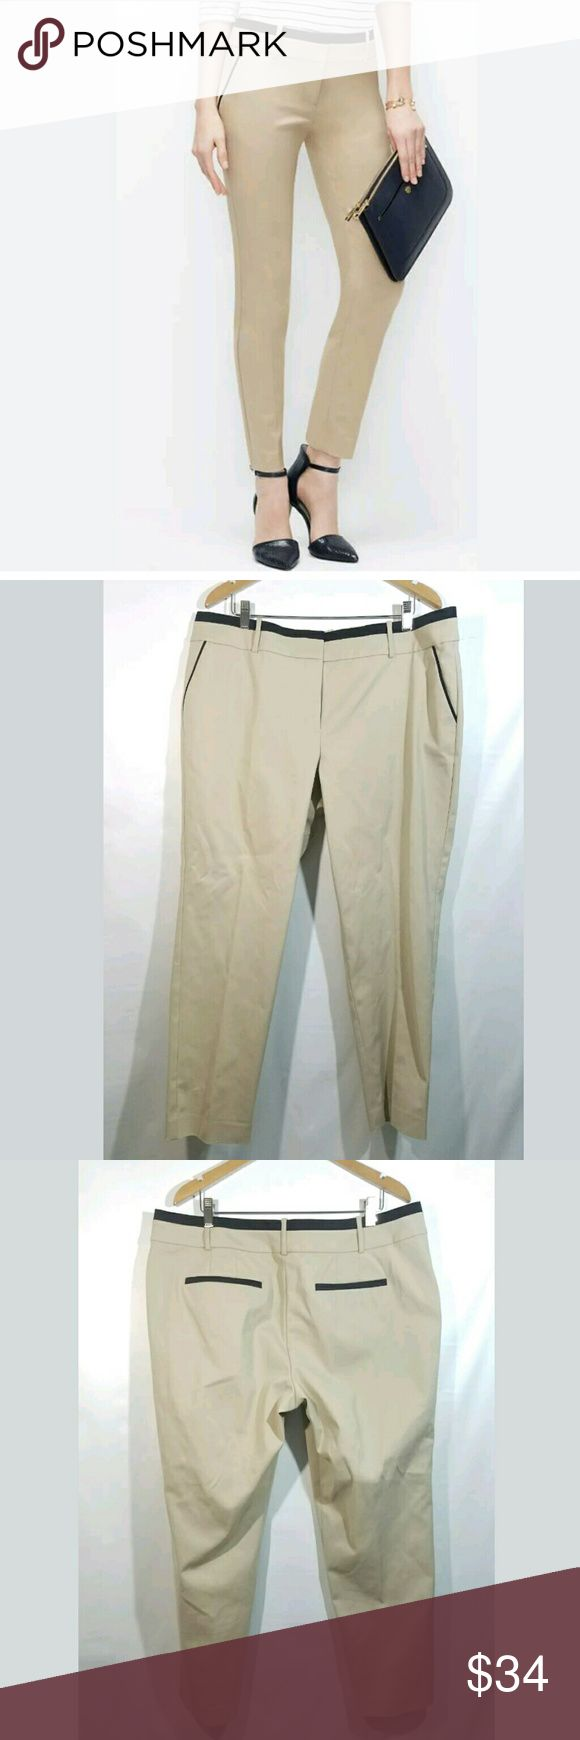 Ann Taylor Pants SZ 16 Classic Ankle Stretch Ann Taylor Pants Women's SZ 16 Classic Ankle Stretch Cotton Piping Khaki Tan  Excellent used condition.   39 inch waist.  11 inch rise.  47 inch hips.  28 inch inseam.   Pre-owned item condition. Item has little to no signs of wear unless specifically stated. Please carefully review item details and uploaded pictures for details of this item before bidding or buying. Item is functional and ready for your closet!    LB Ann Taylor Pants Ankle…